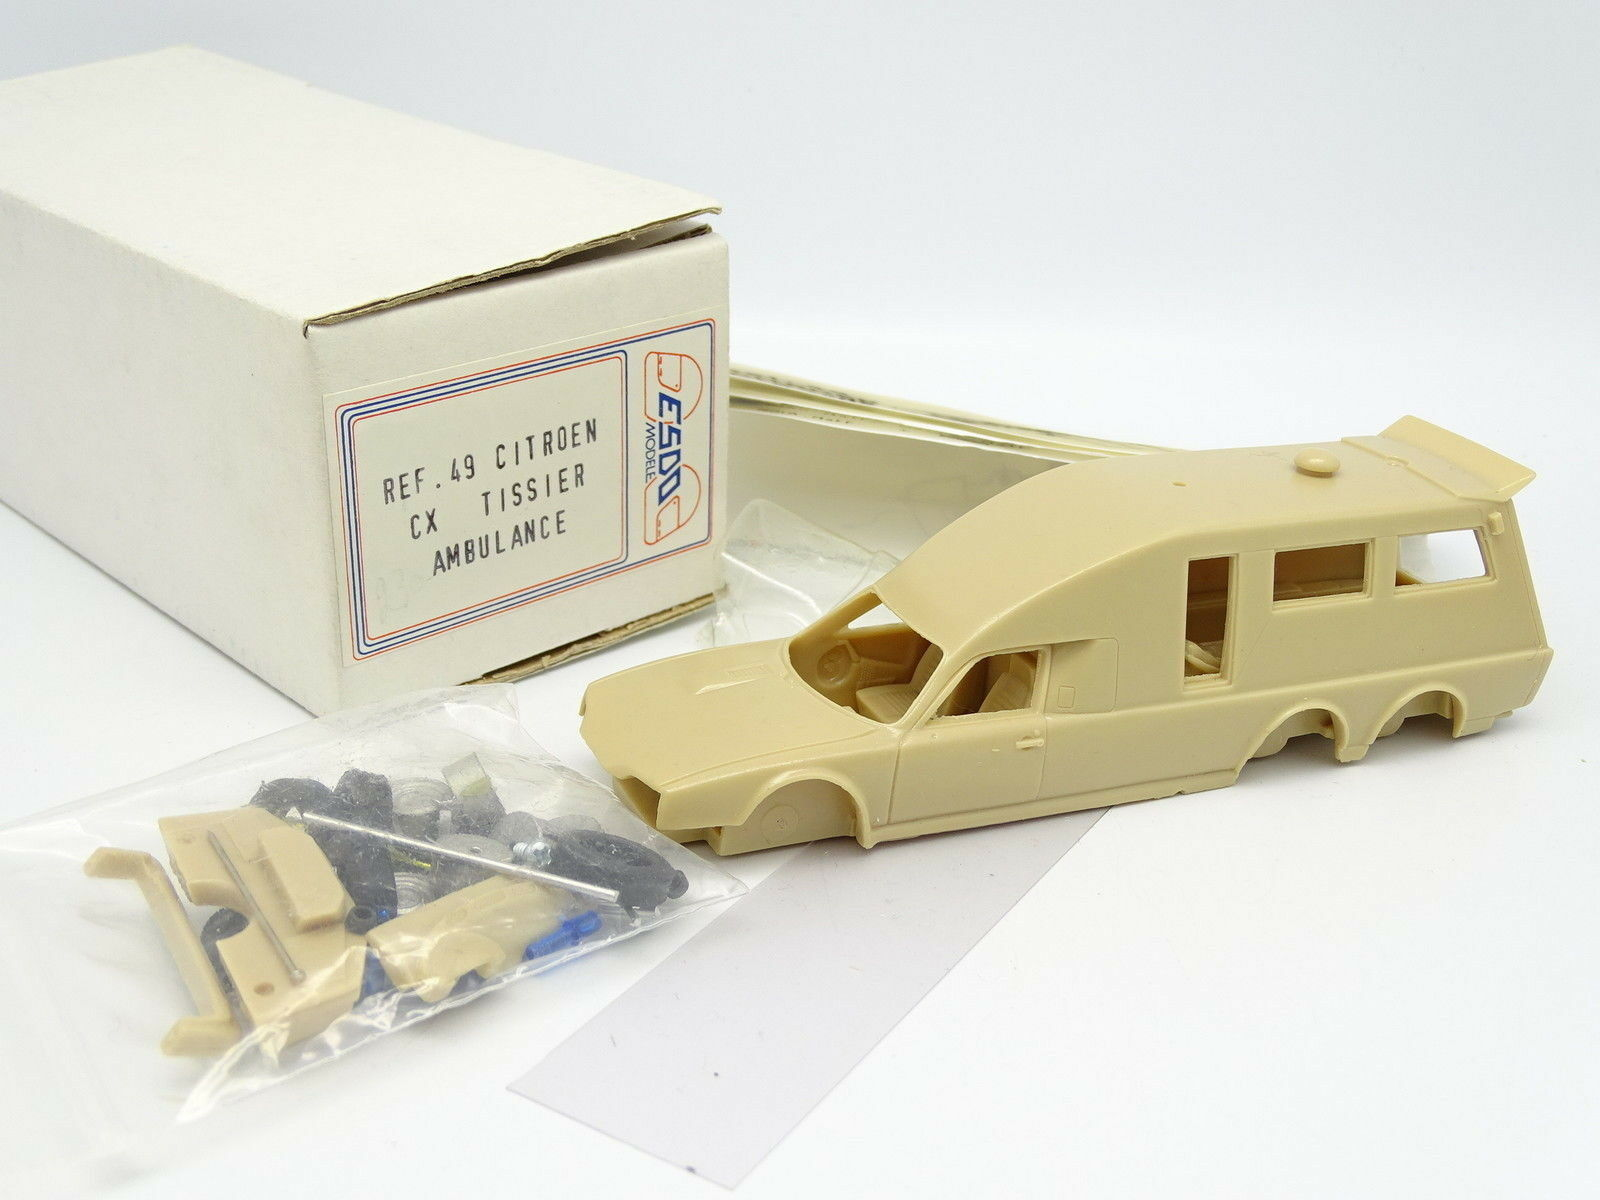 ESDO Kit à Monter Monter Monter 1/43 - Citroen CX Tissier Fourgon Ambulance 81a3ad